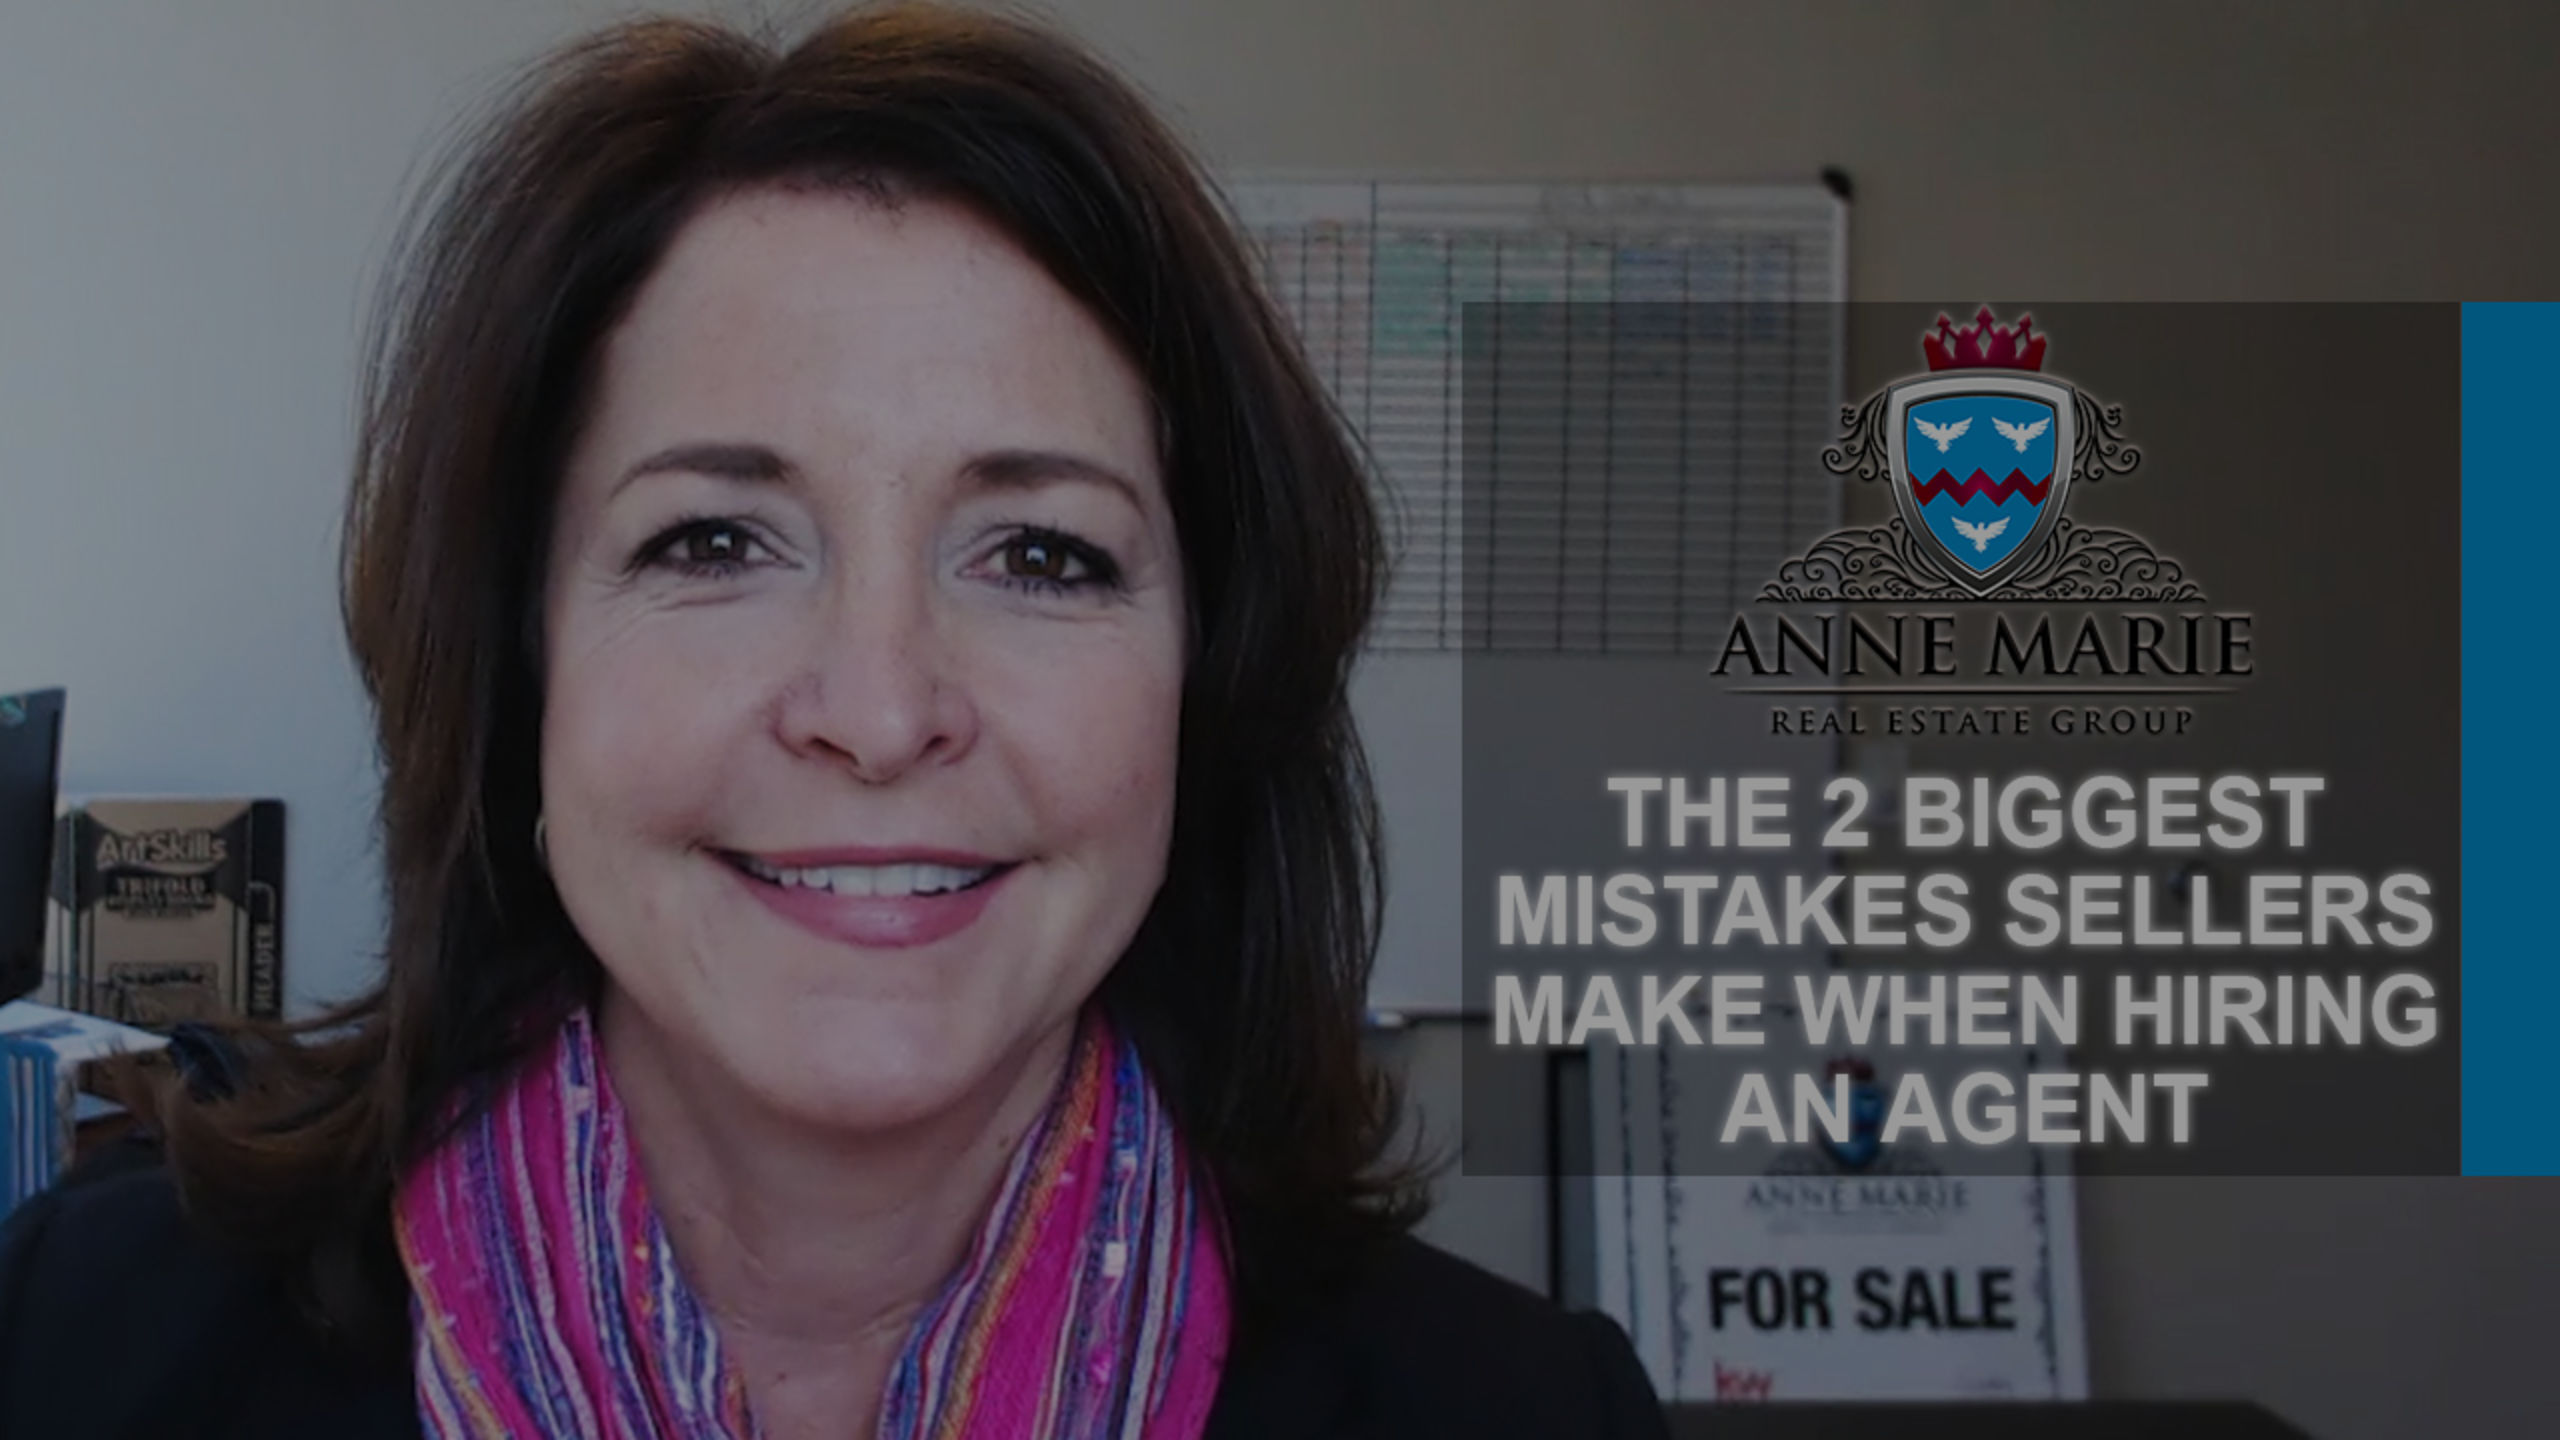 The 2 Biggest Mistakes When Choosing an Agent